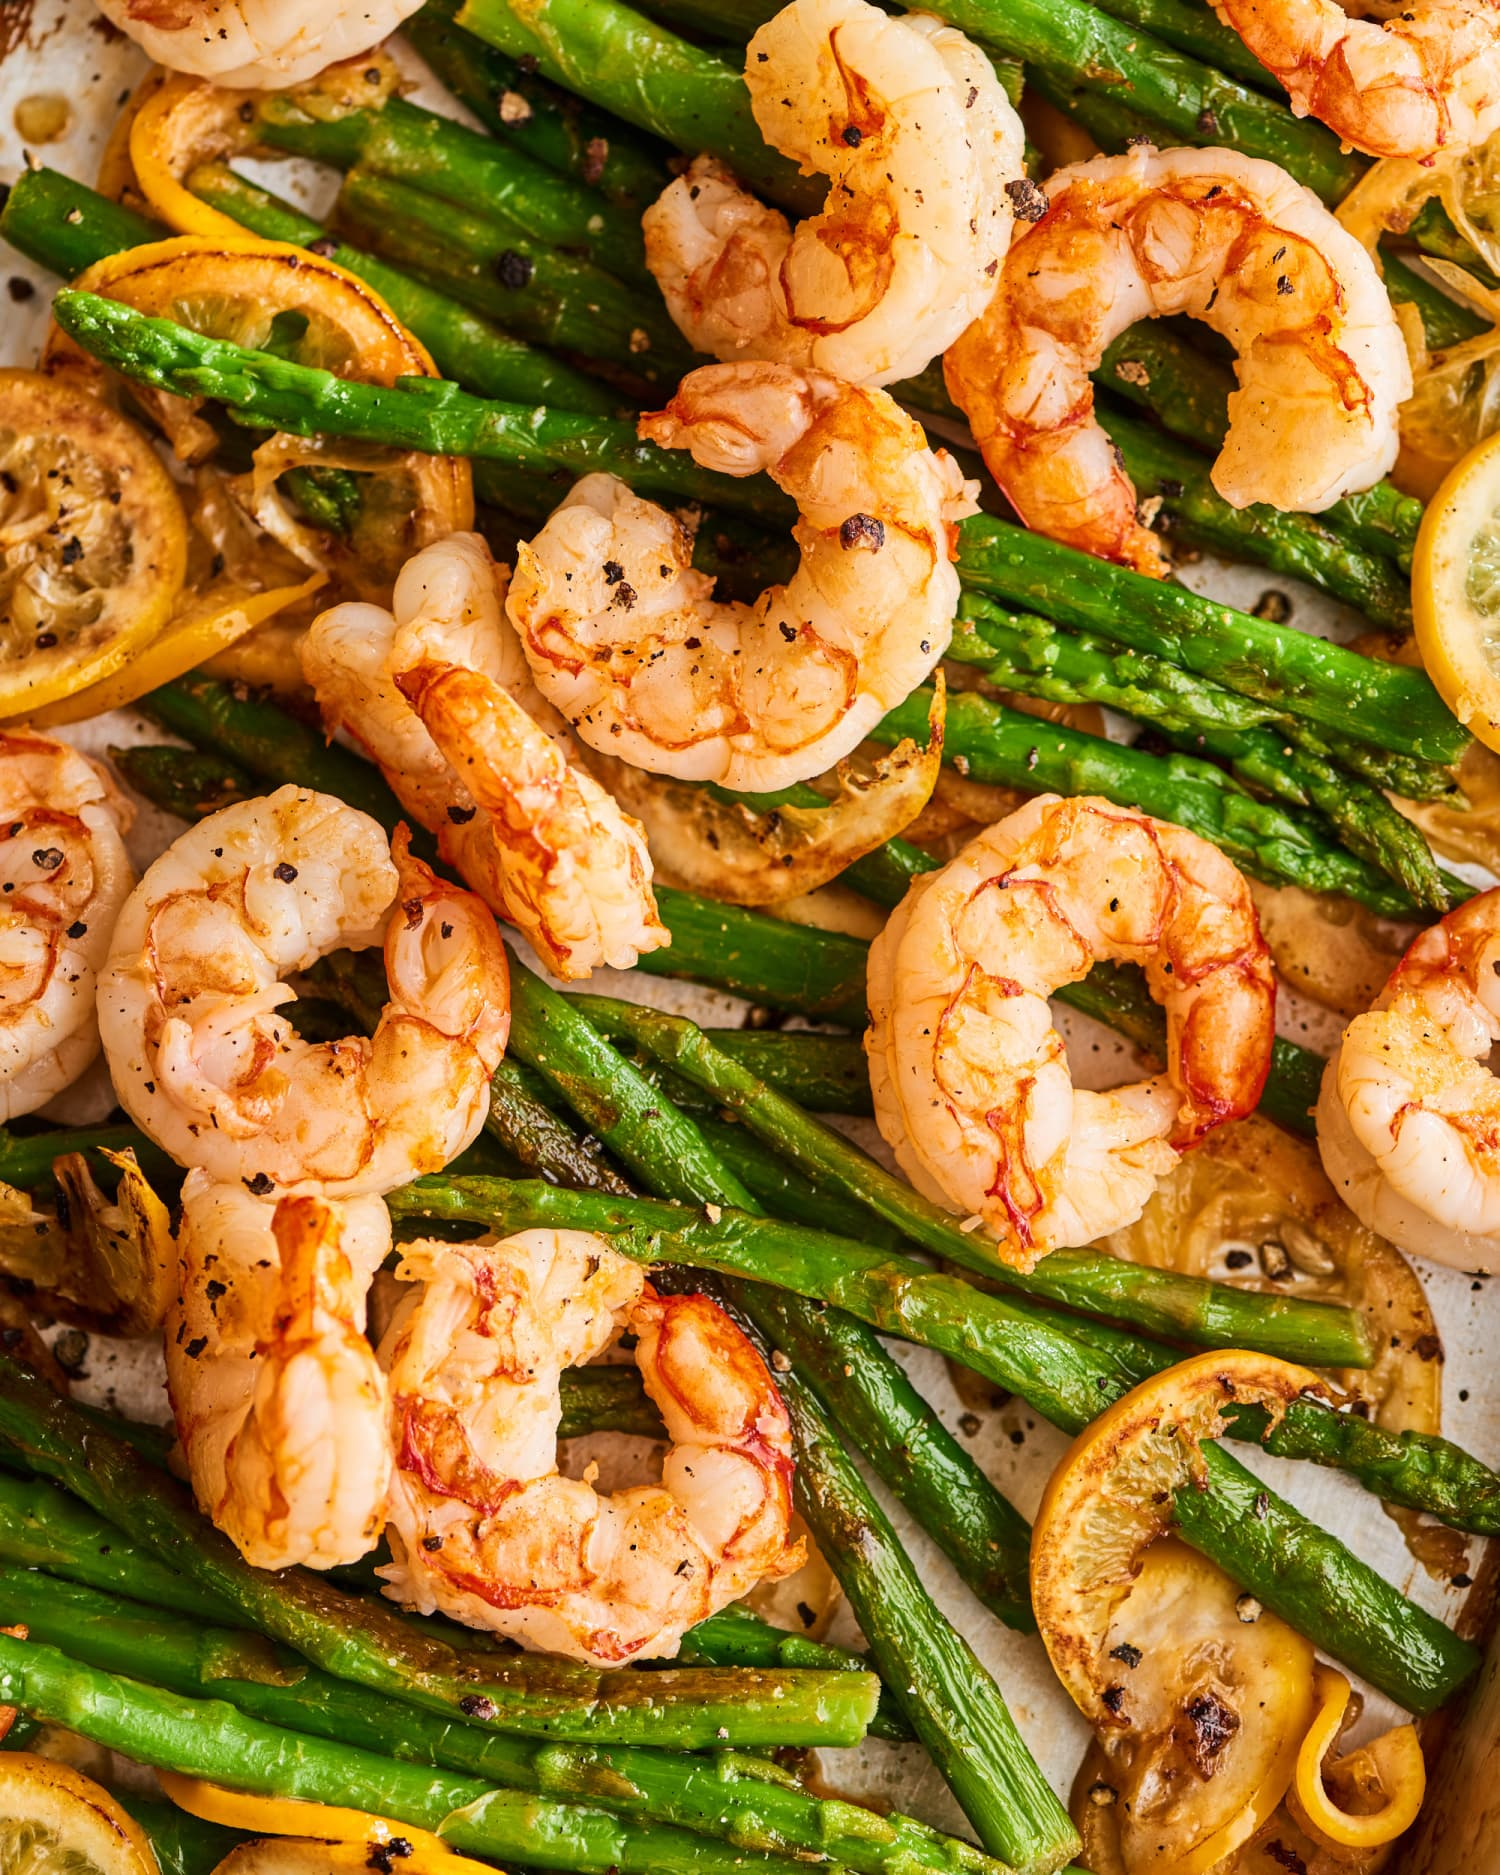 Lemony Sheet Pan Shrimp Is Ready in 10 Minutes